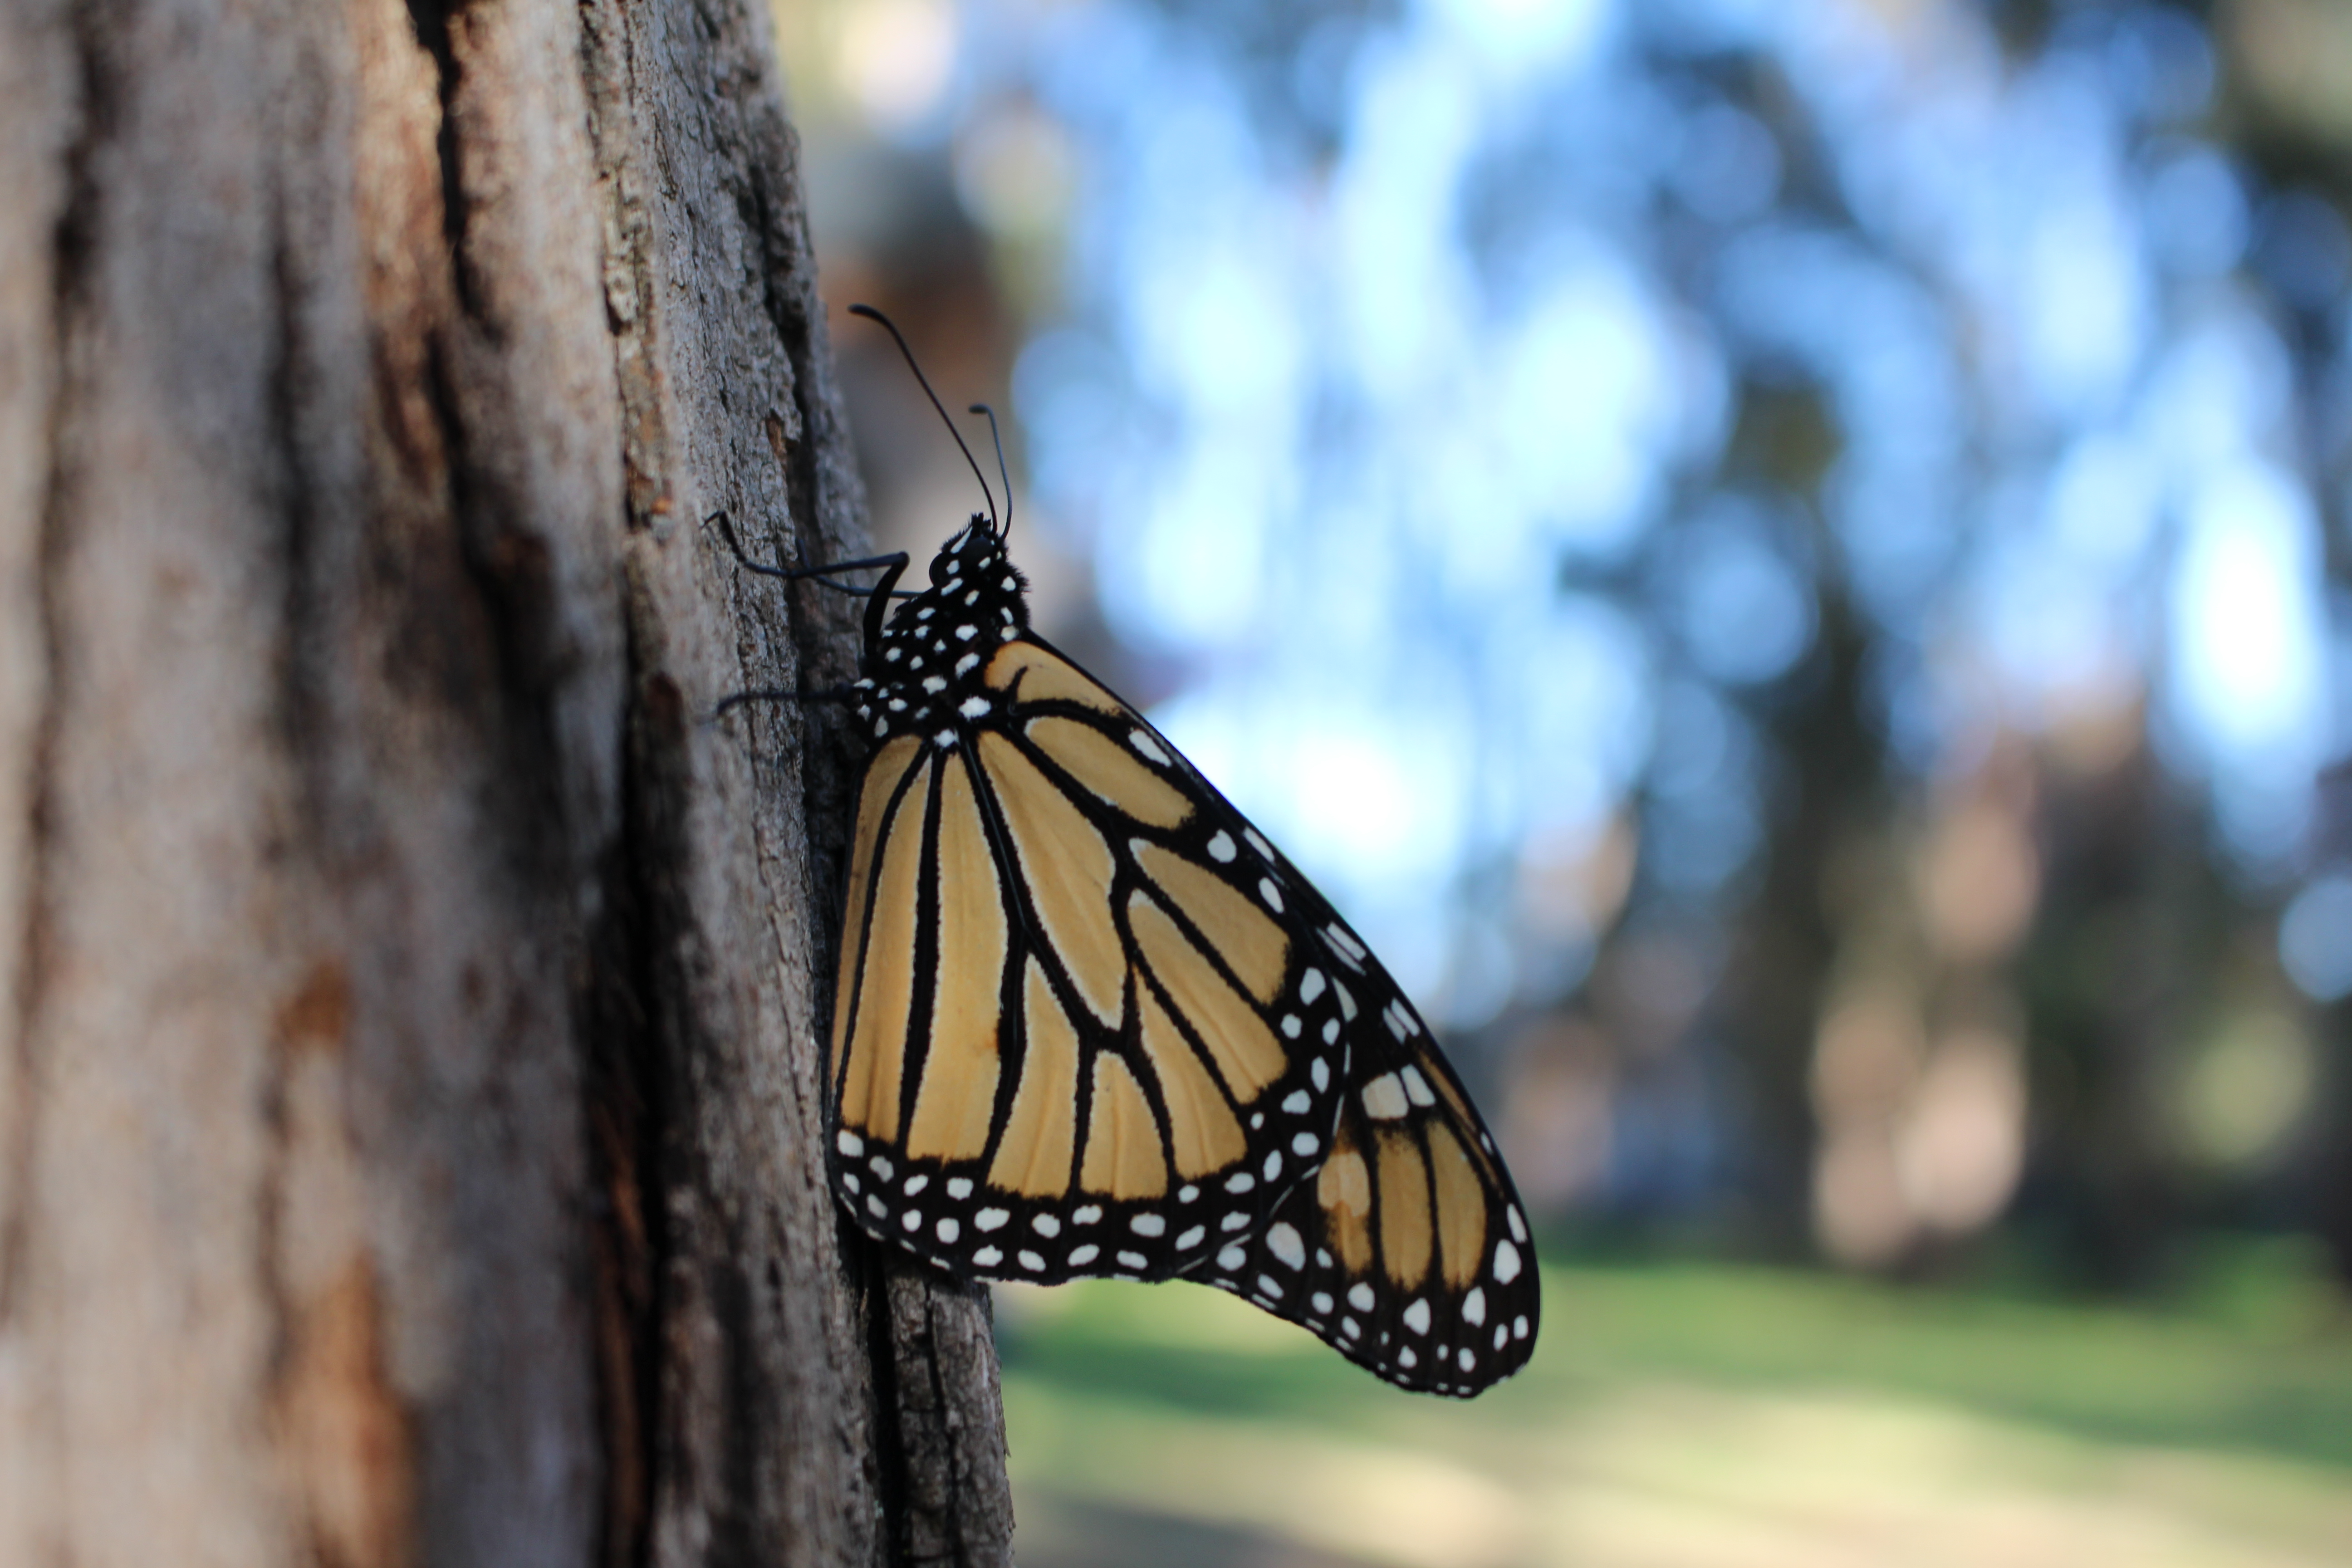 A monarch, with its wings folded, showing the duller orange side, clings to a rough tree trunk in a dimly-lit landscape.